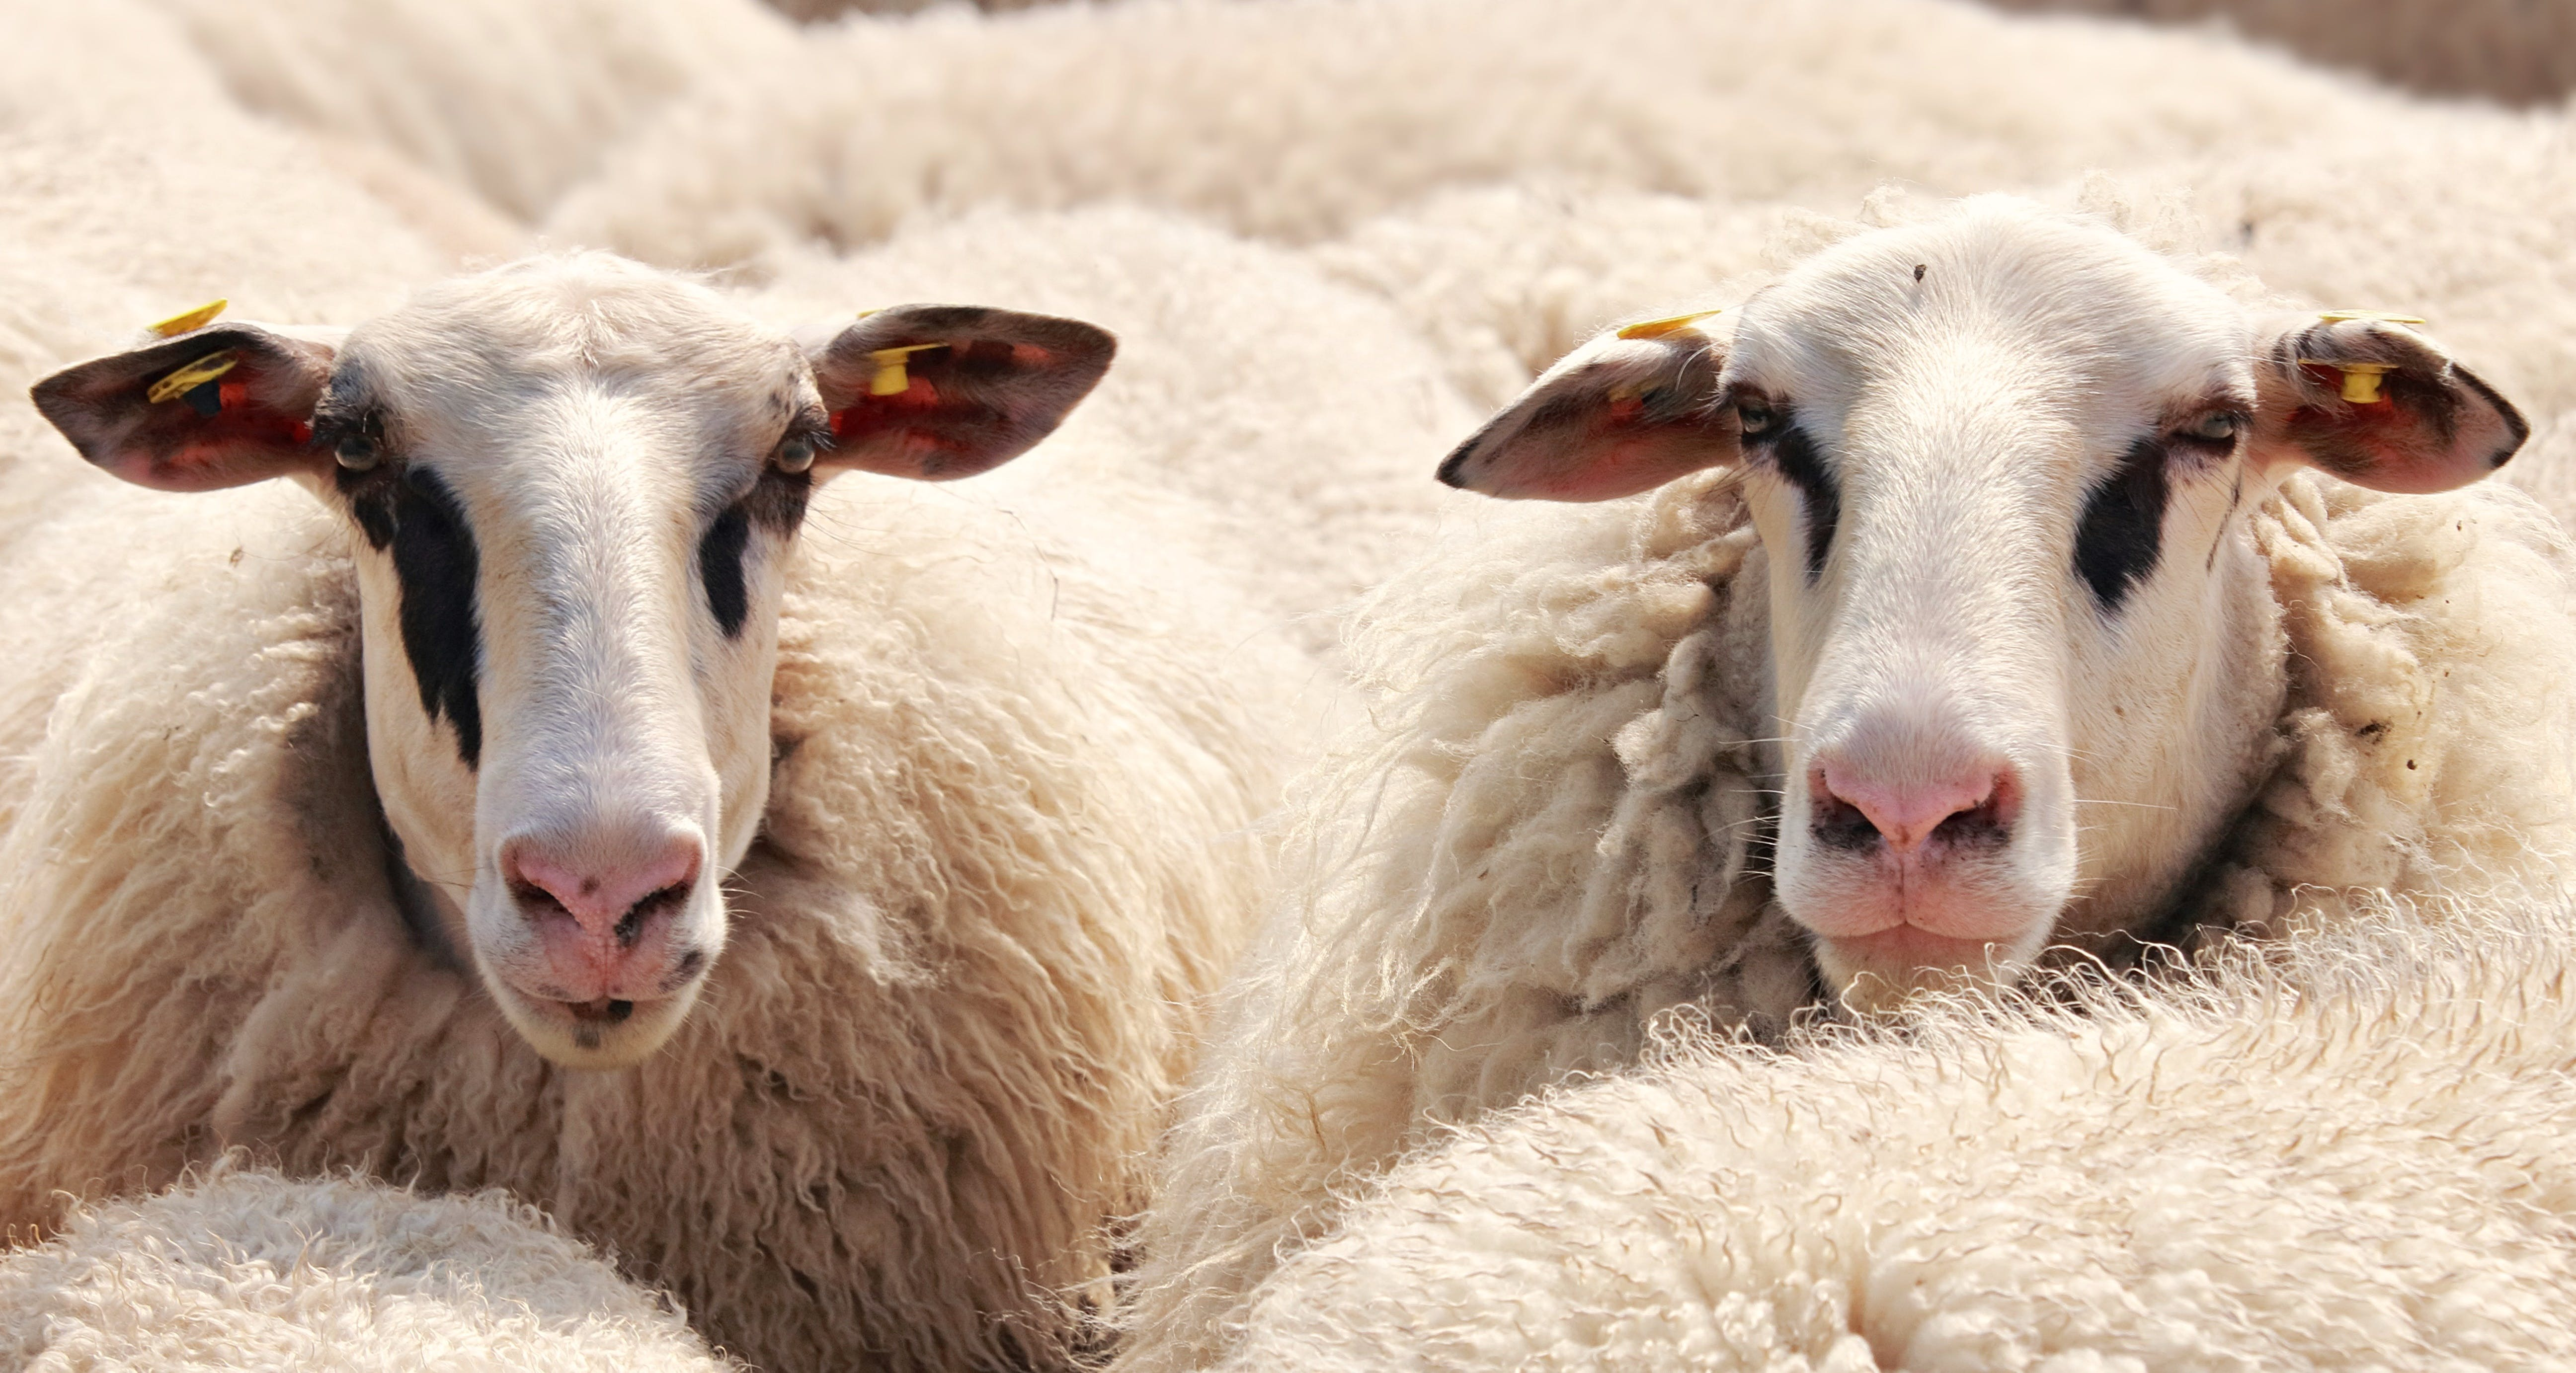 Close-up Photography of White Sheep